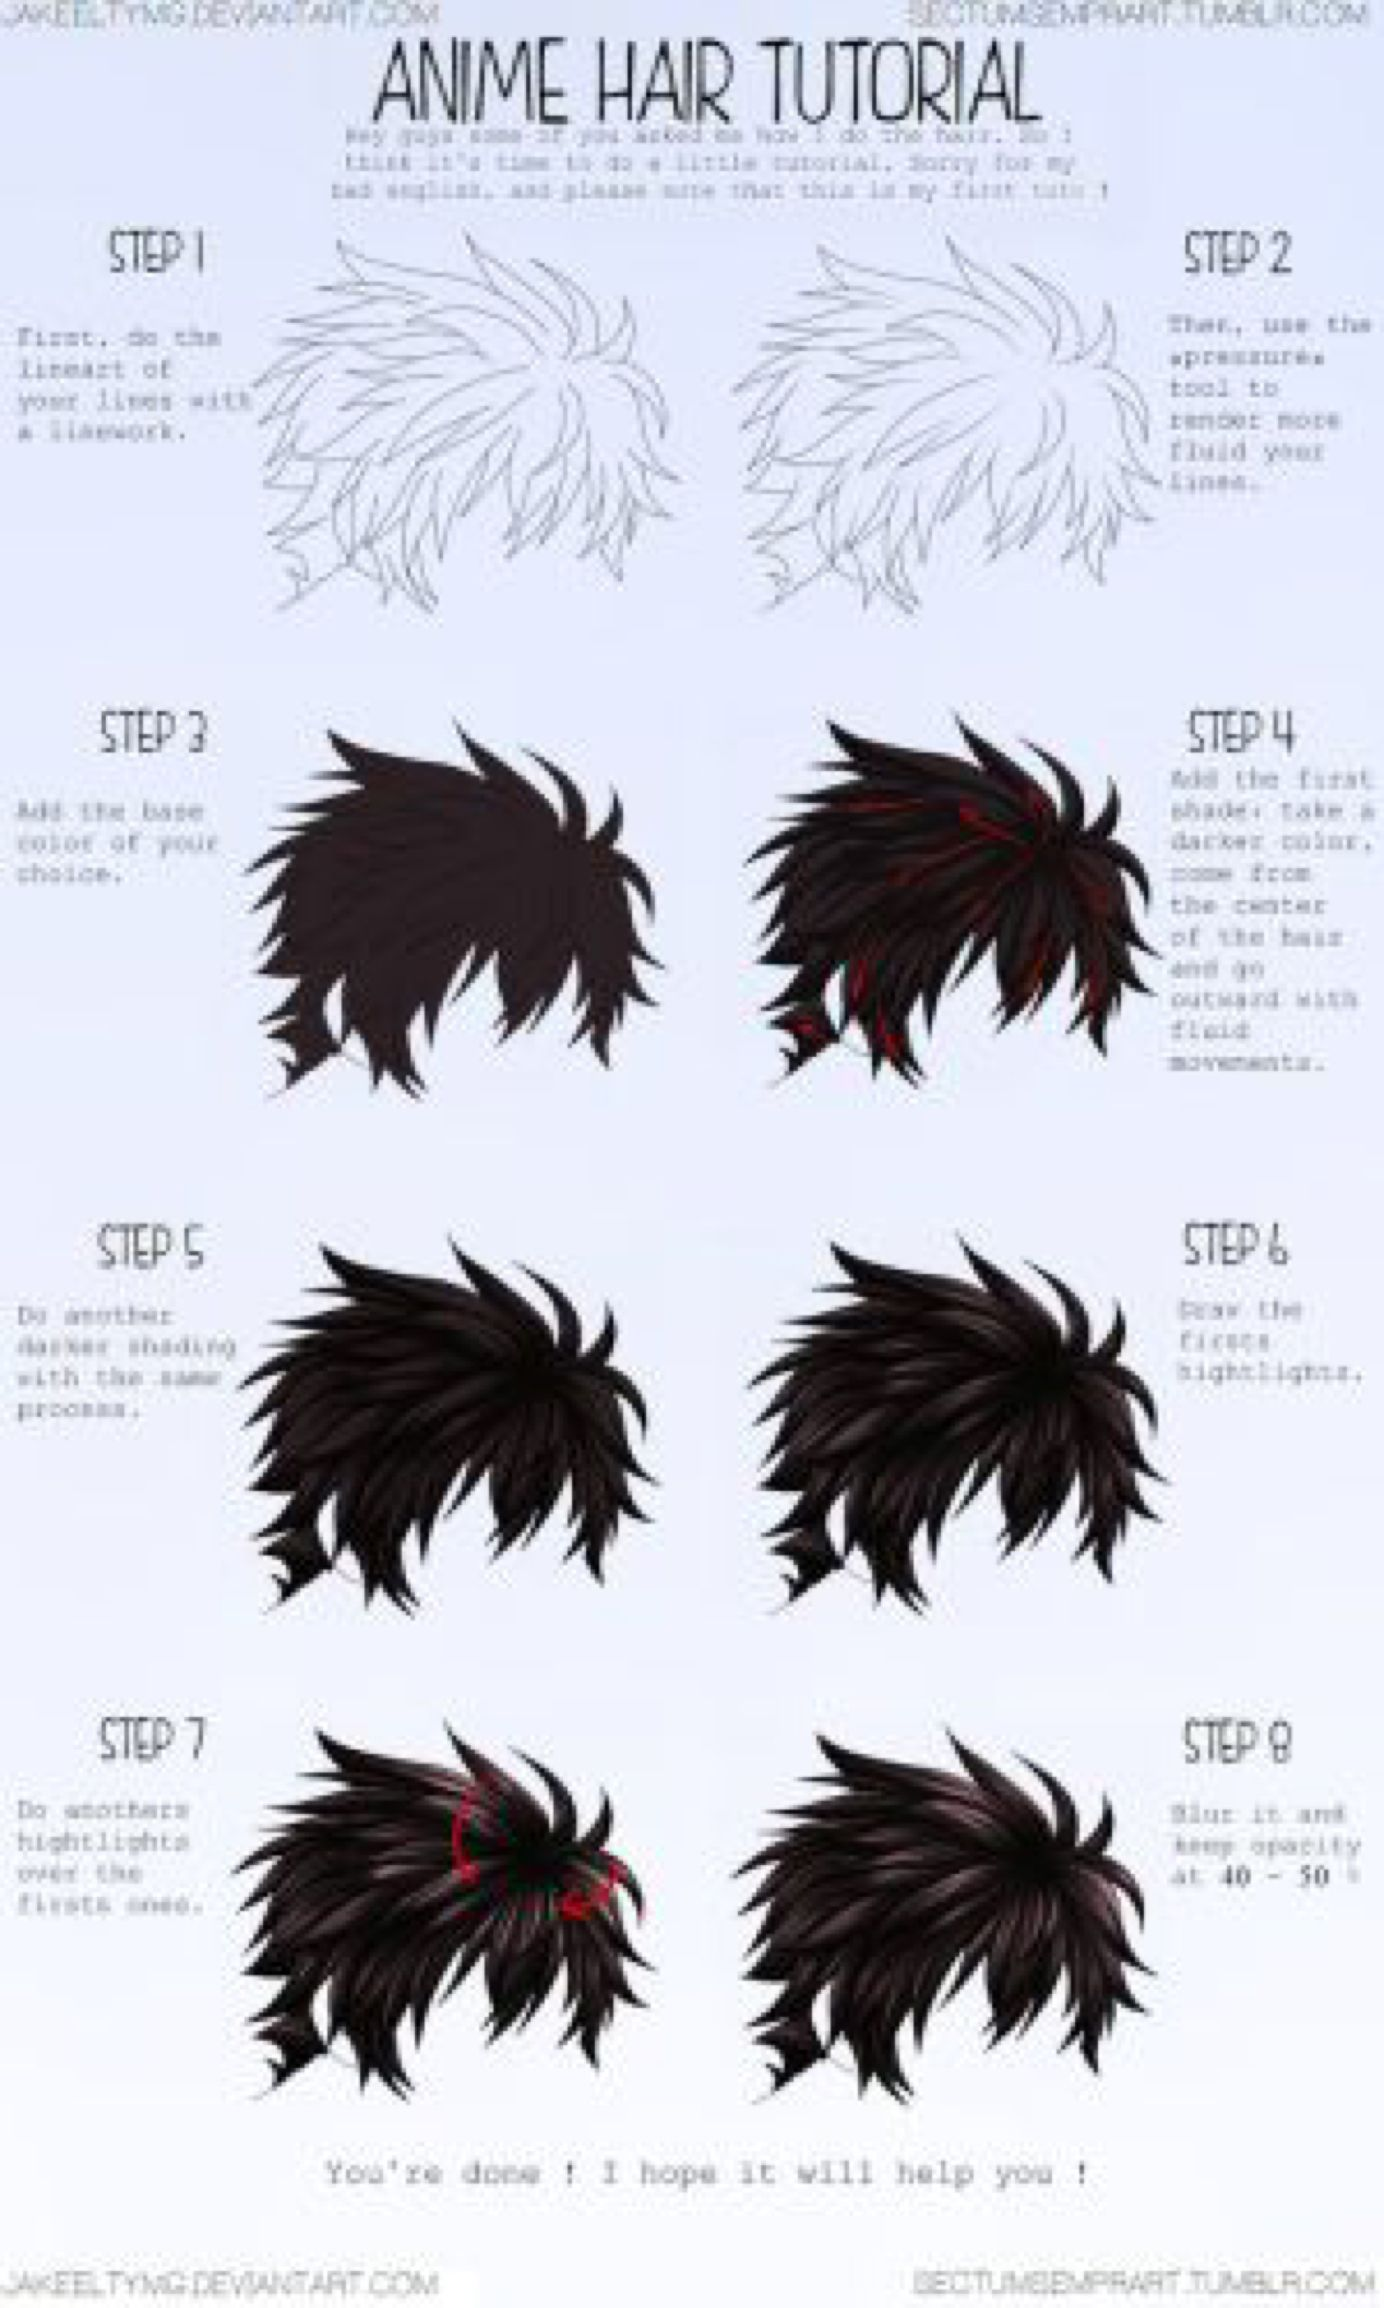 Hair Colouring Tutorial Coloring Tutorial Digital Art Tutorial Anime Drawings Tutorials